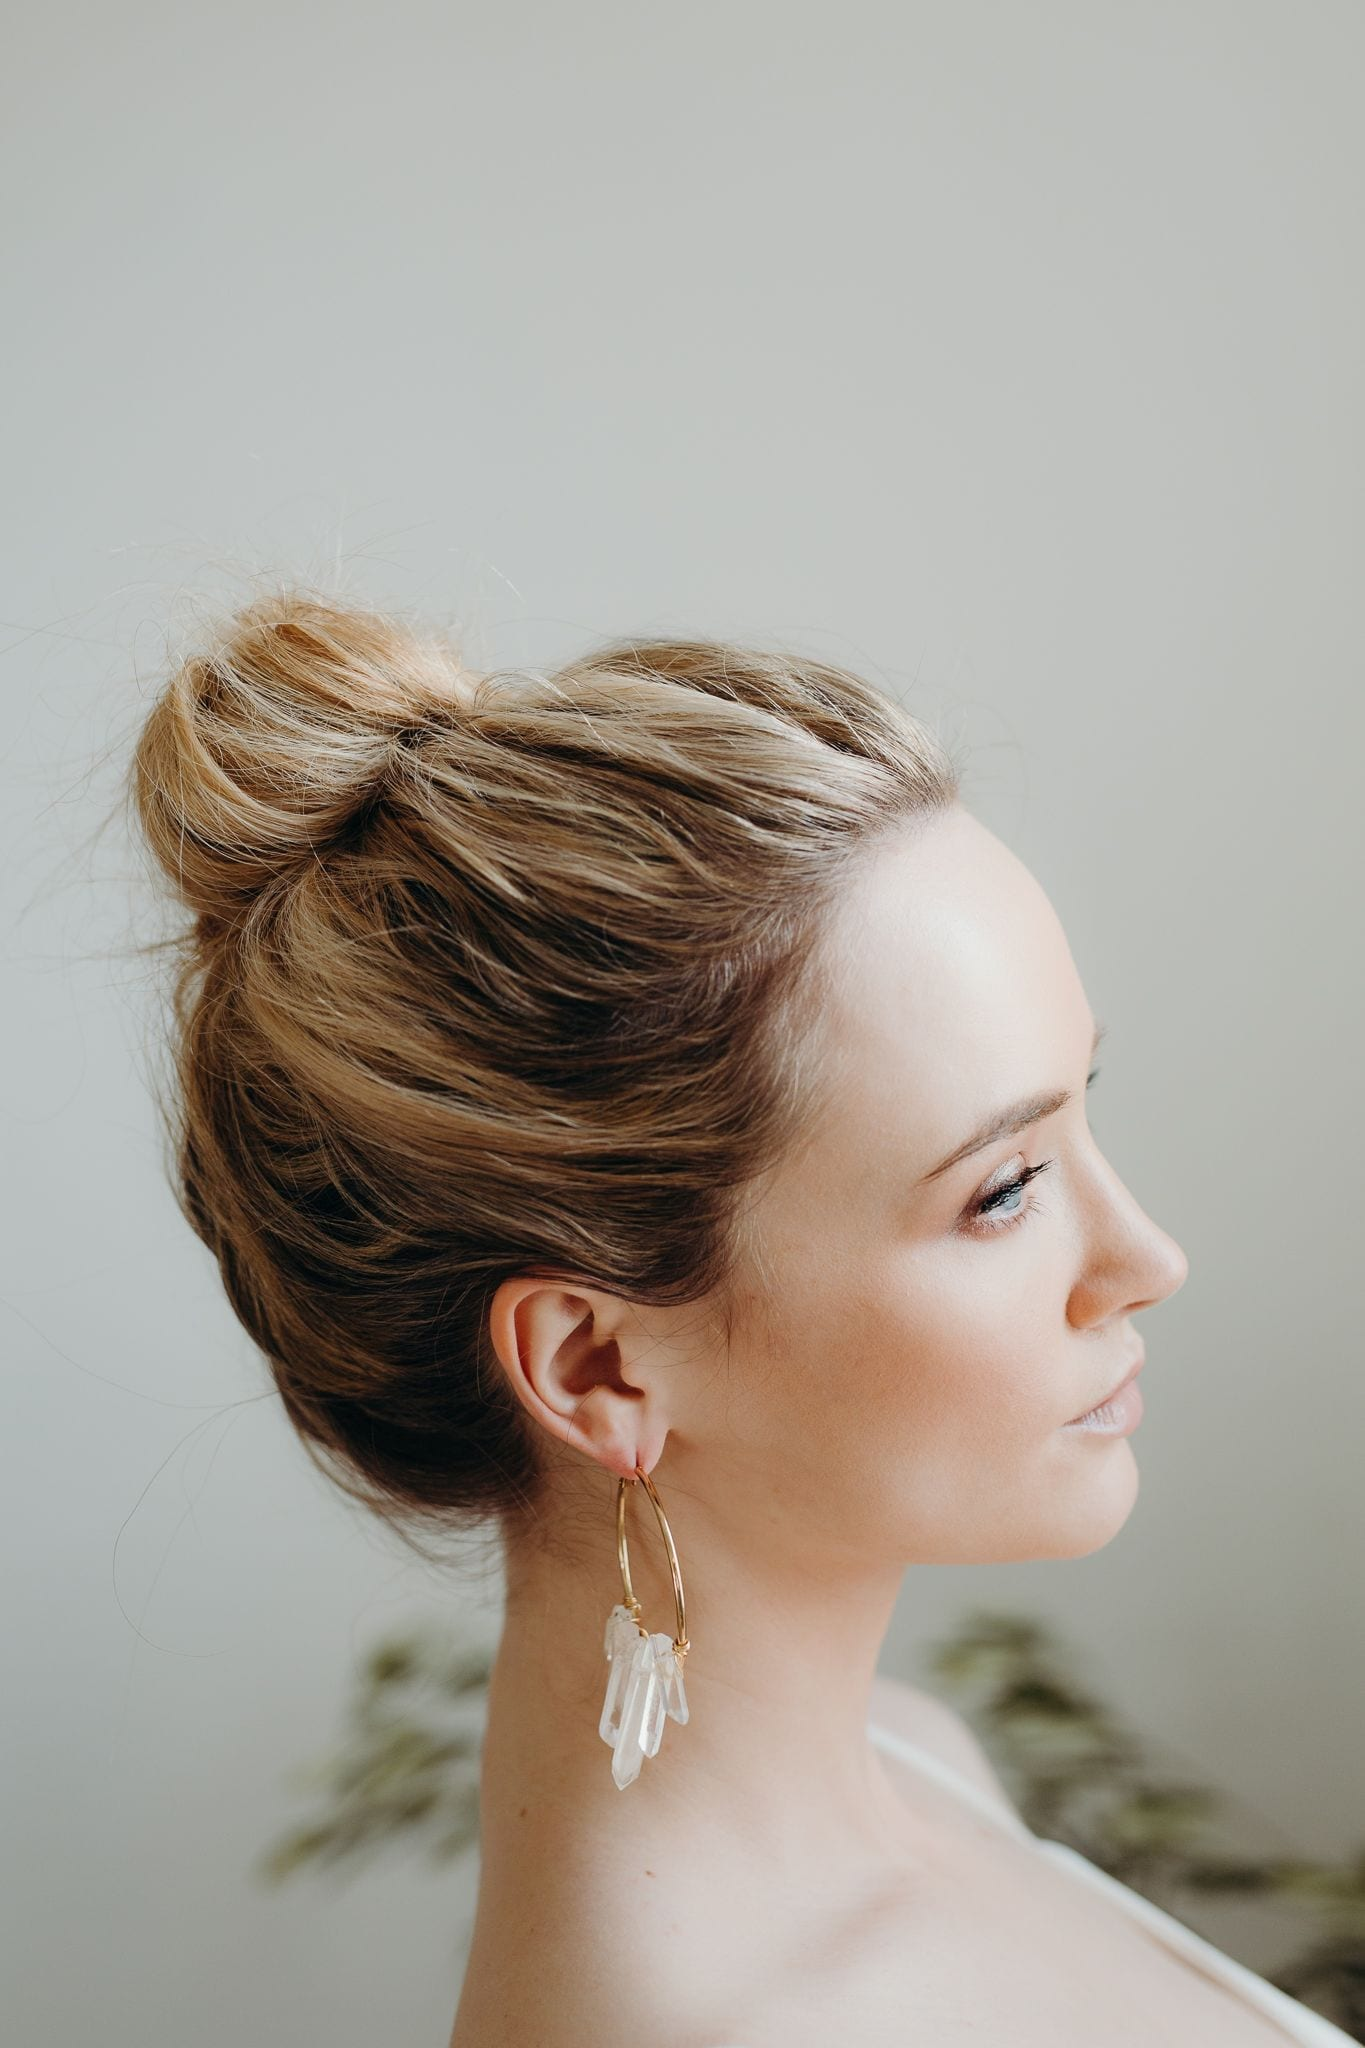 C:\Hera Bridal Limited Dropbox\Marketing Manager Workbook\Daisy by Katie Yeung\Daisy Imagery\Daisy Styled shoots\2019\Daisy Lopdell House Day 1,2,3\Day 3 Accessories - LR for web - categorised\Quartz Hoop Earrings by A.B Ellie